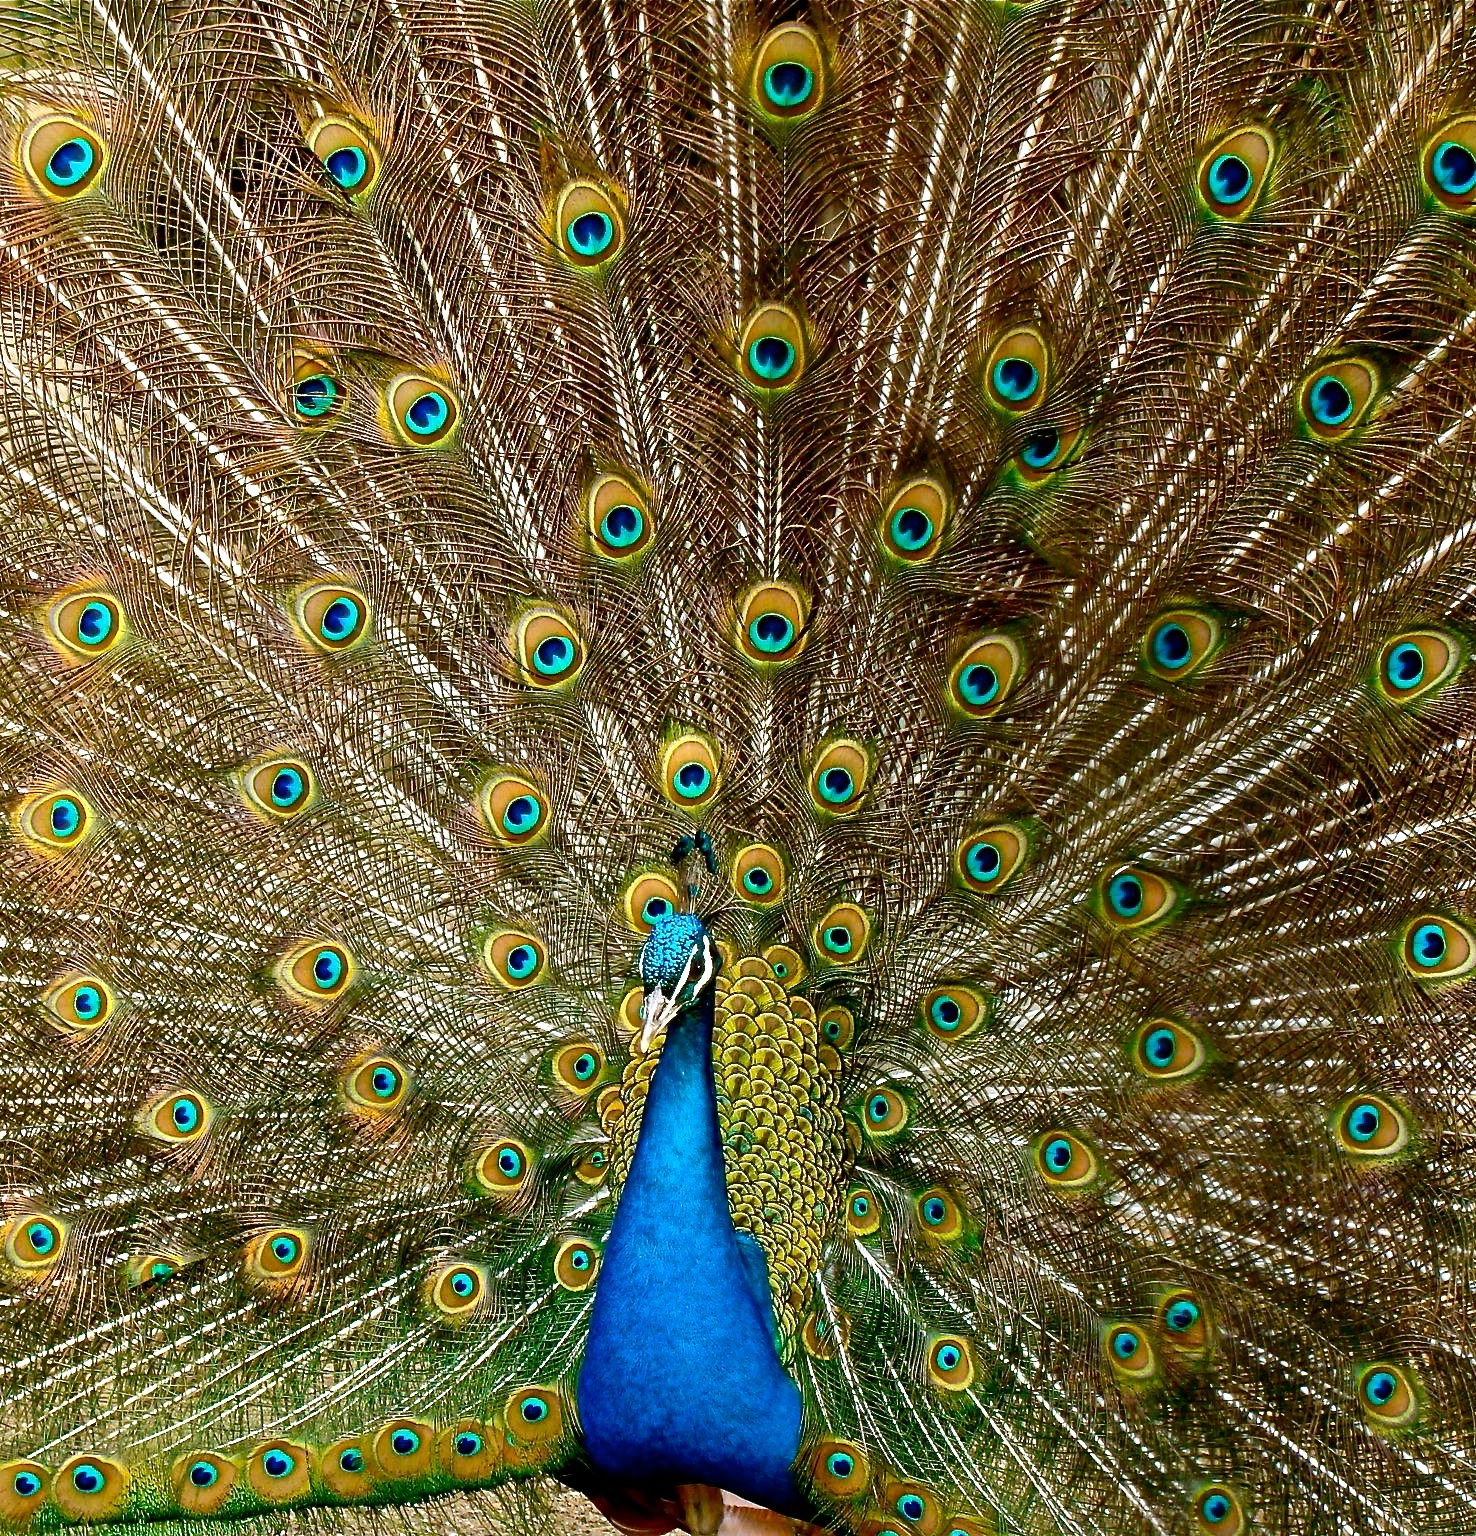 Peacock with it's tail feathers fanned out.